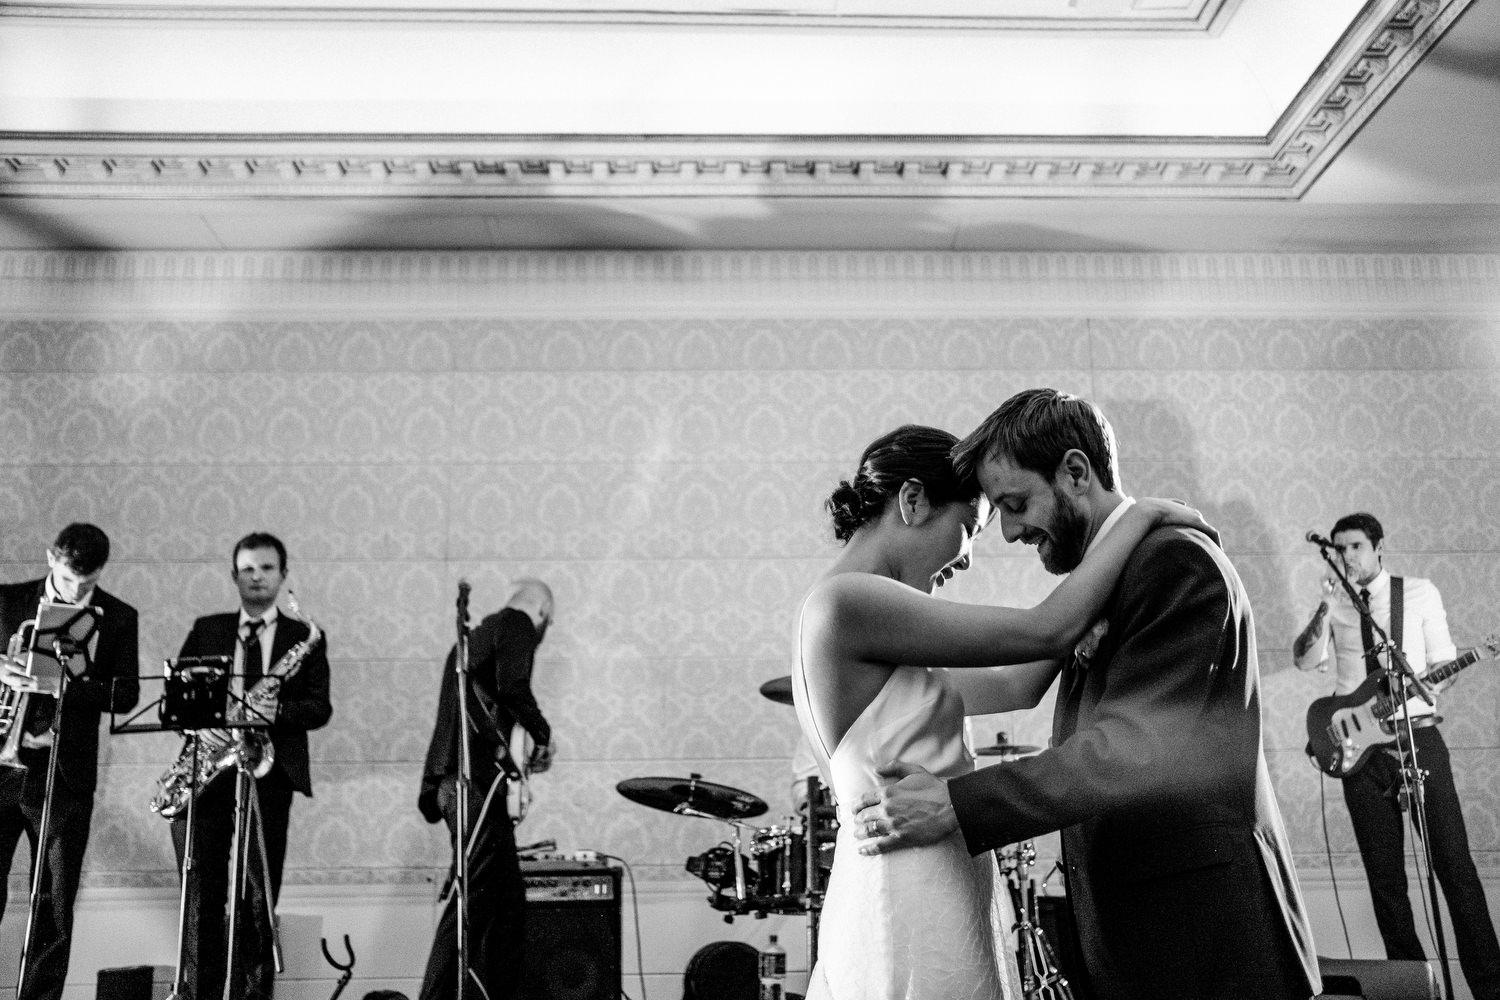 dmp0653_photographer_wedding_dublin_david_mcclelland_candid_photography_fujifilm_shelbourne_reception_documentary